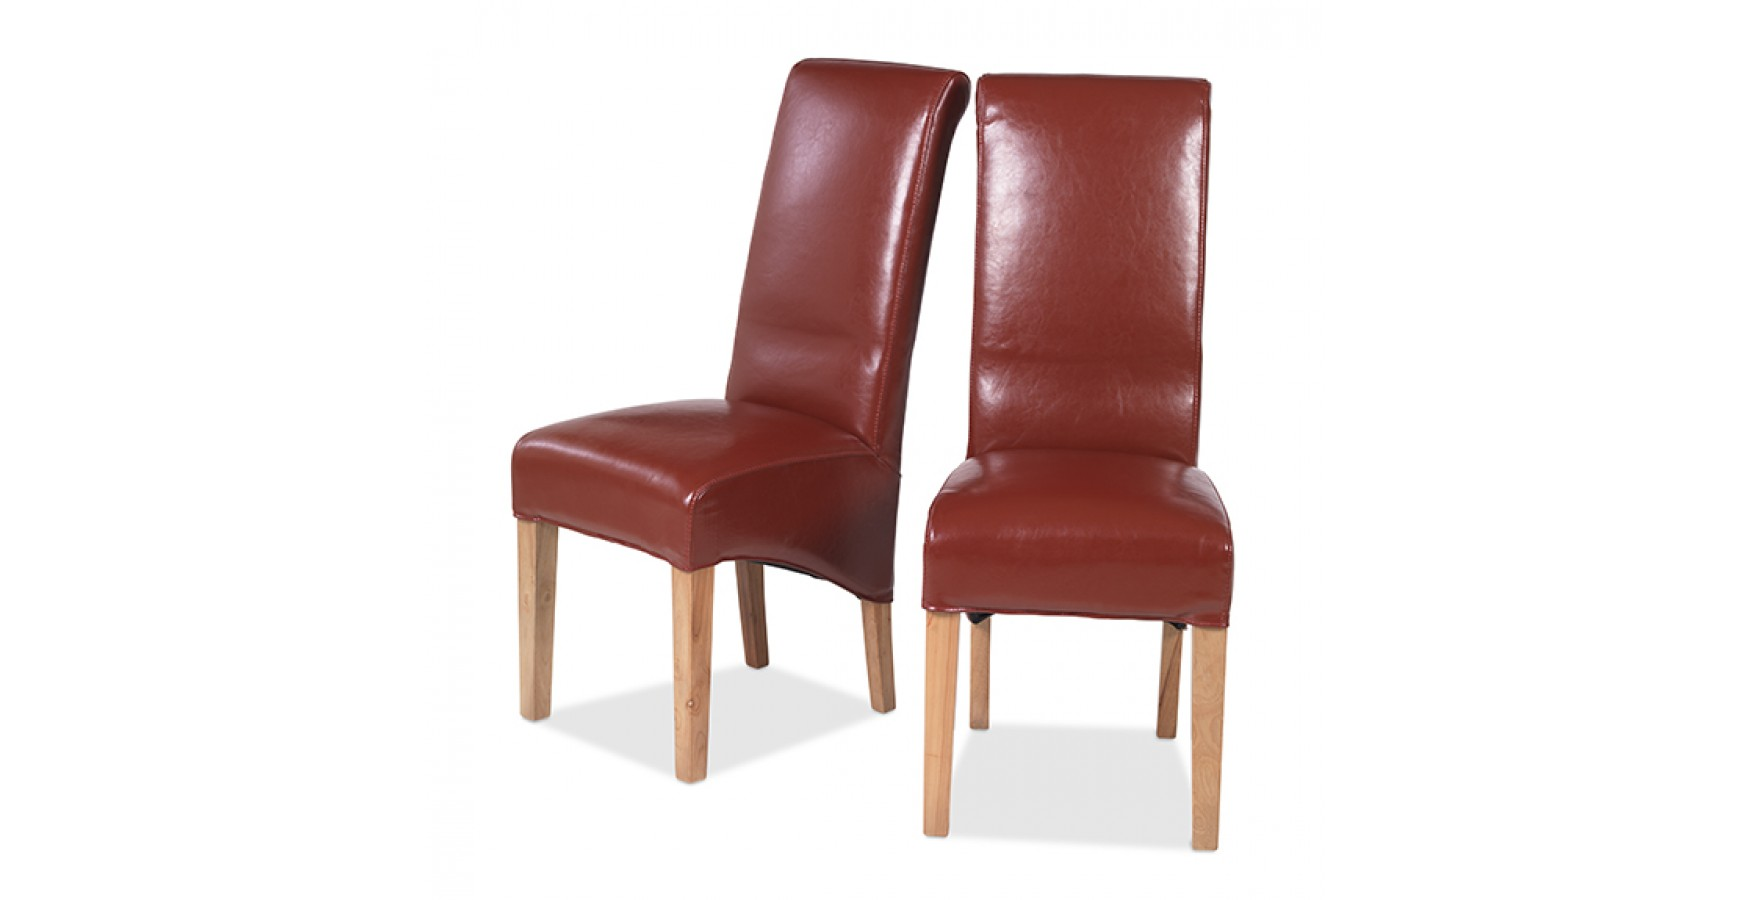 Cuba Oak Bonded Leather Dining Chairs Red Pair Lifestyle Furniture UK